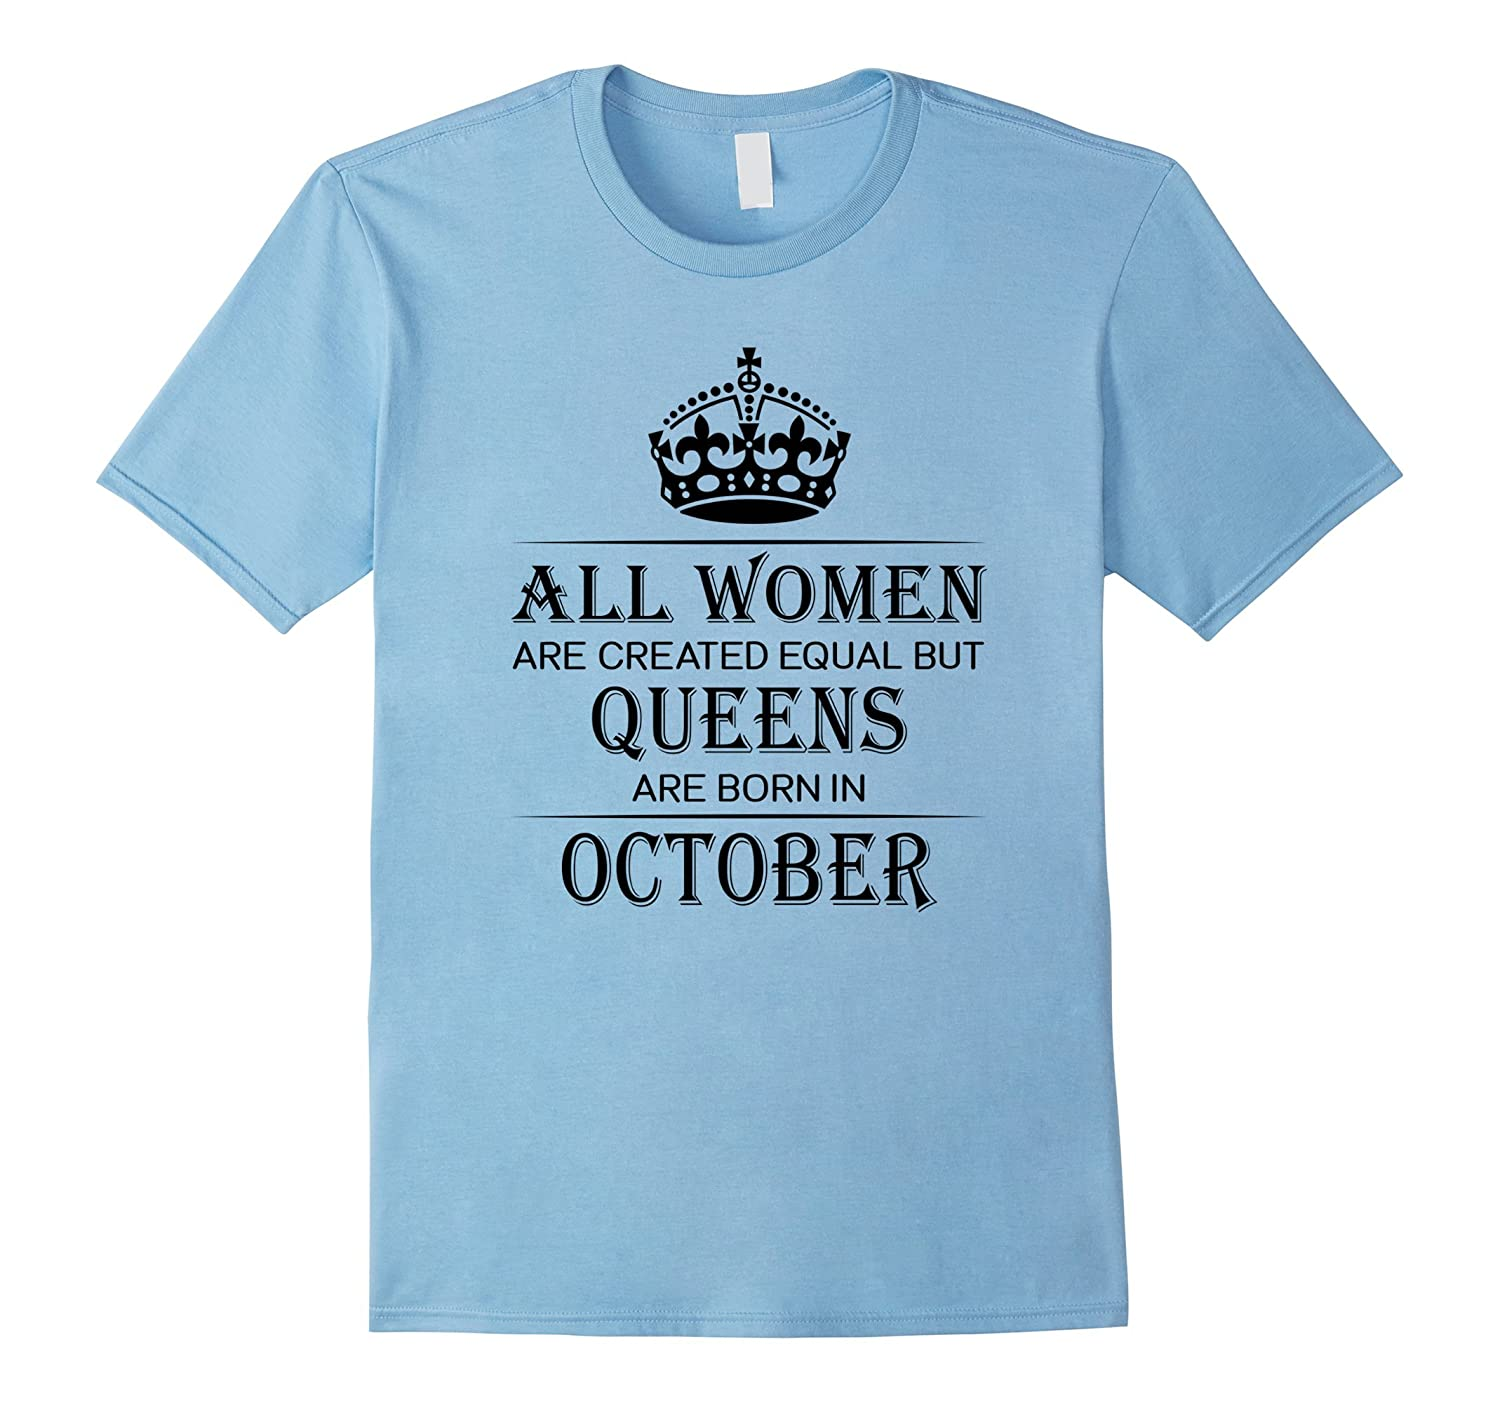 All Women Are Created Equal But Queens Are Born In October-CL